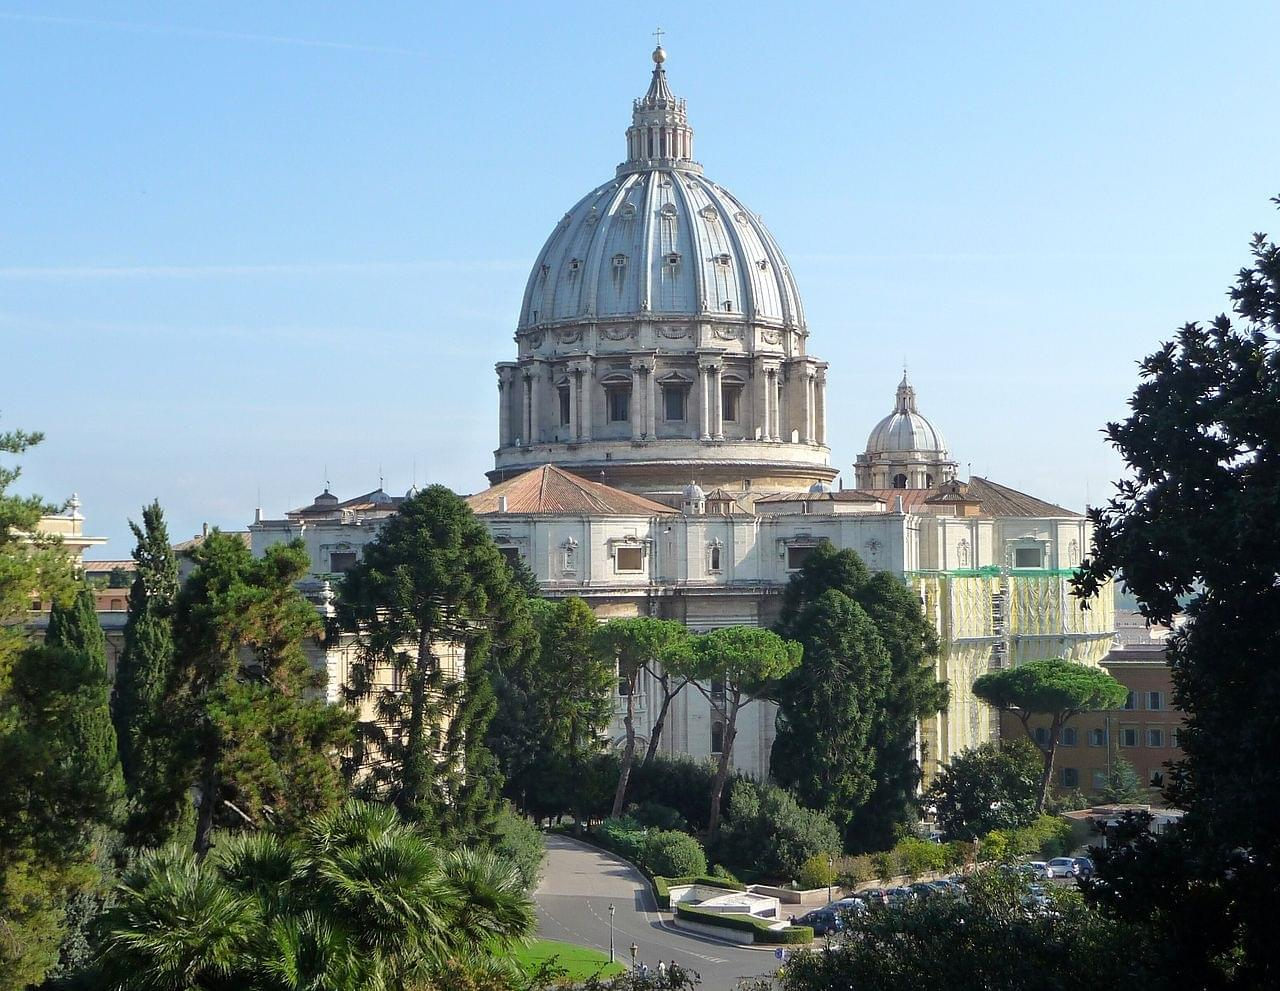 Saint-Peter's Basilica and the Vatican